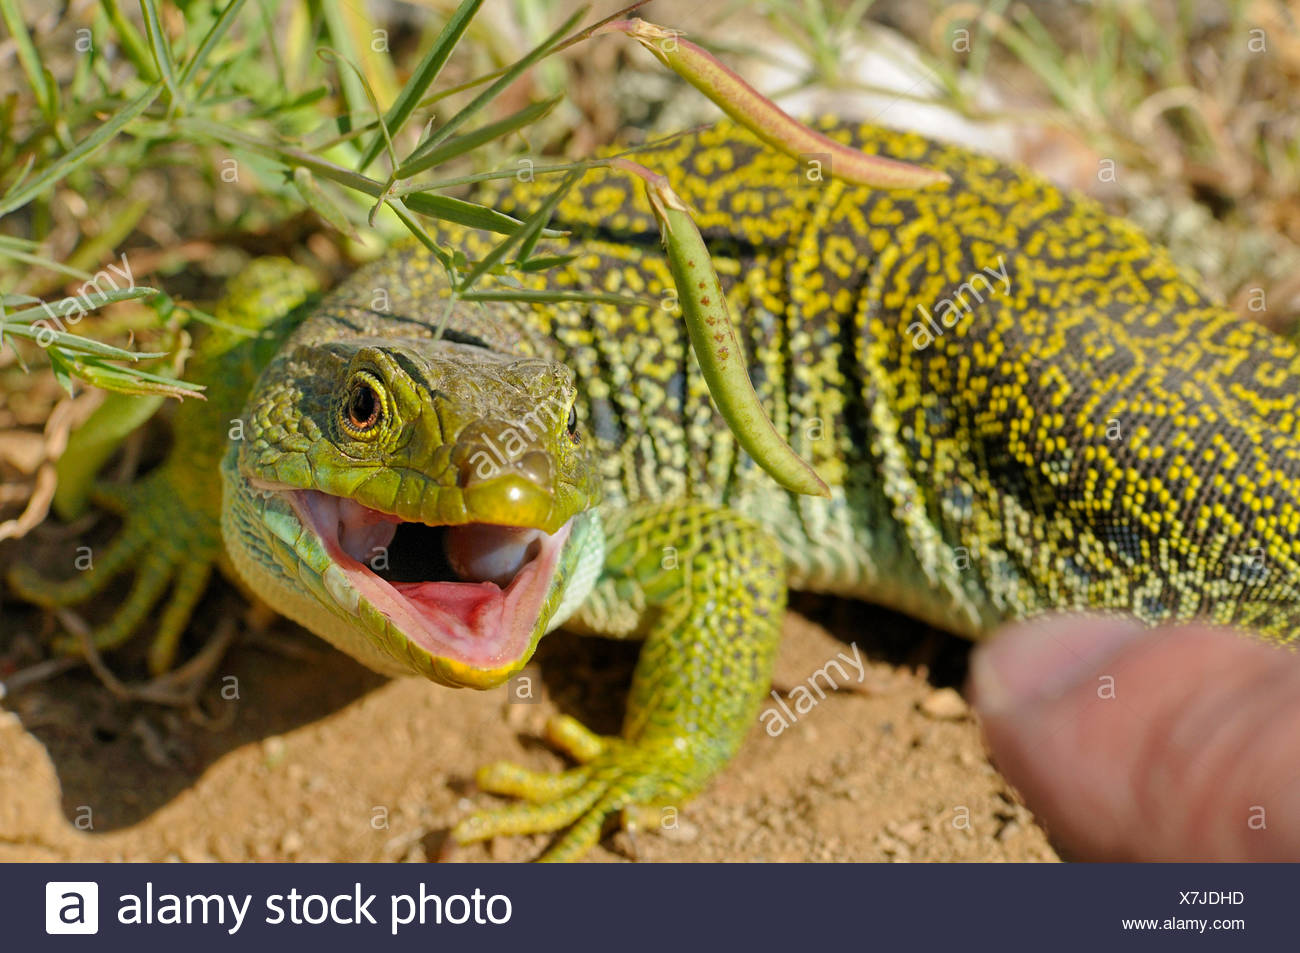 ocellated lizard, ocellated green lizard, eyed lizard, jewelled lizard (Lacerta lepida), lizard being teased with a finger is threatening by snarling, Spain, Extremadura - Stock Image